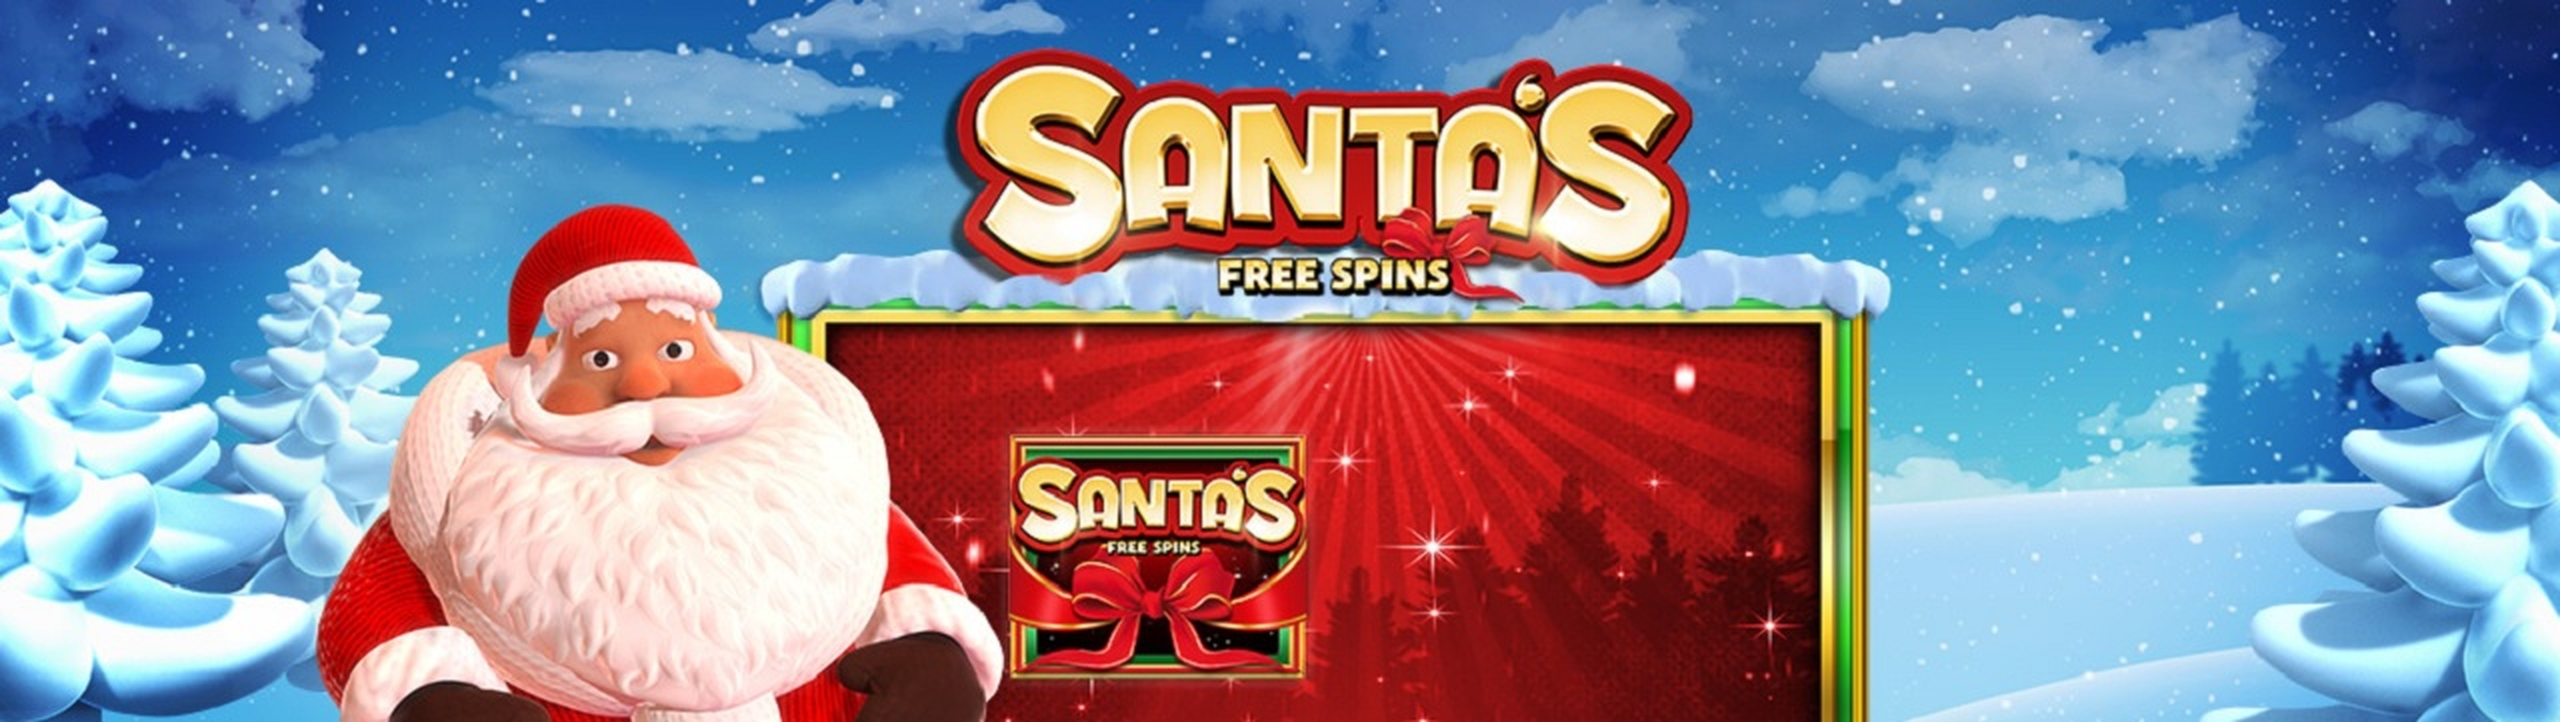 The Santa's Free Spins Online Slot Demo Game by Inspired Gaming